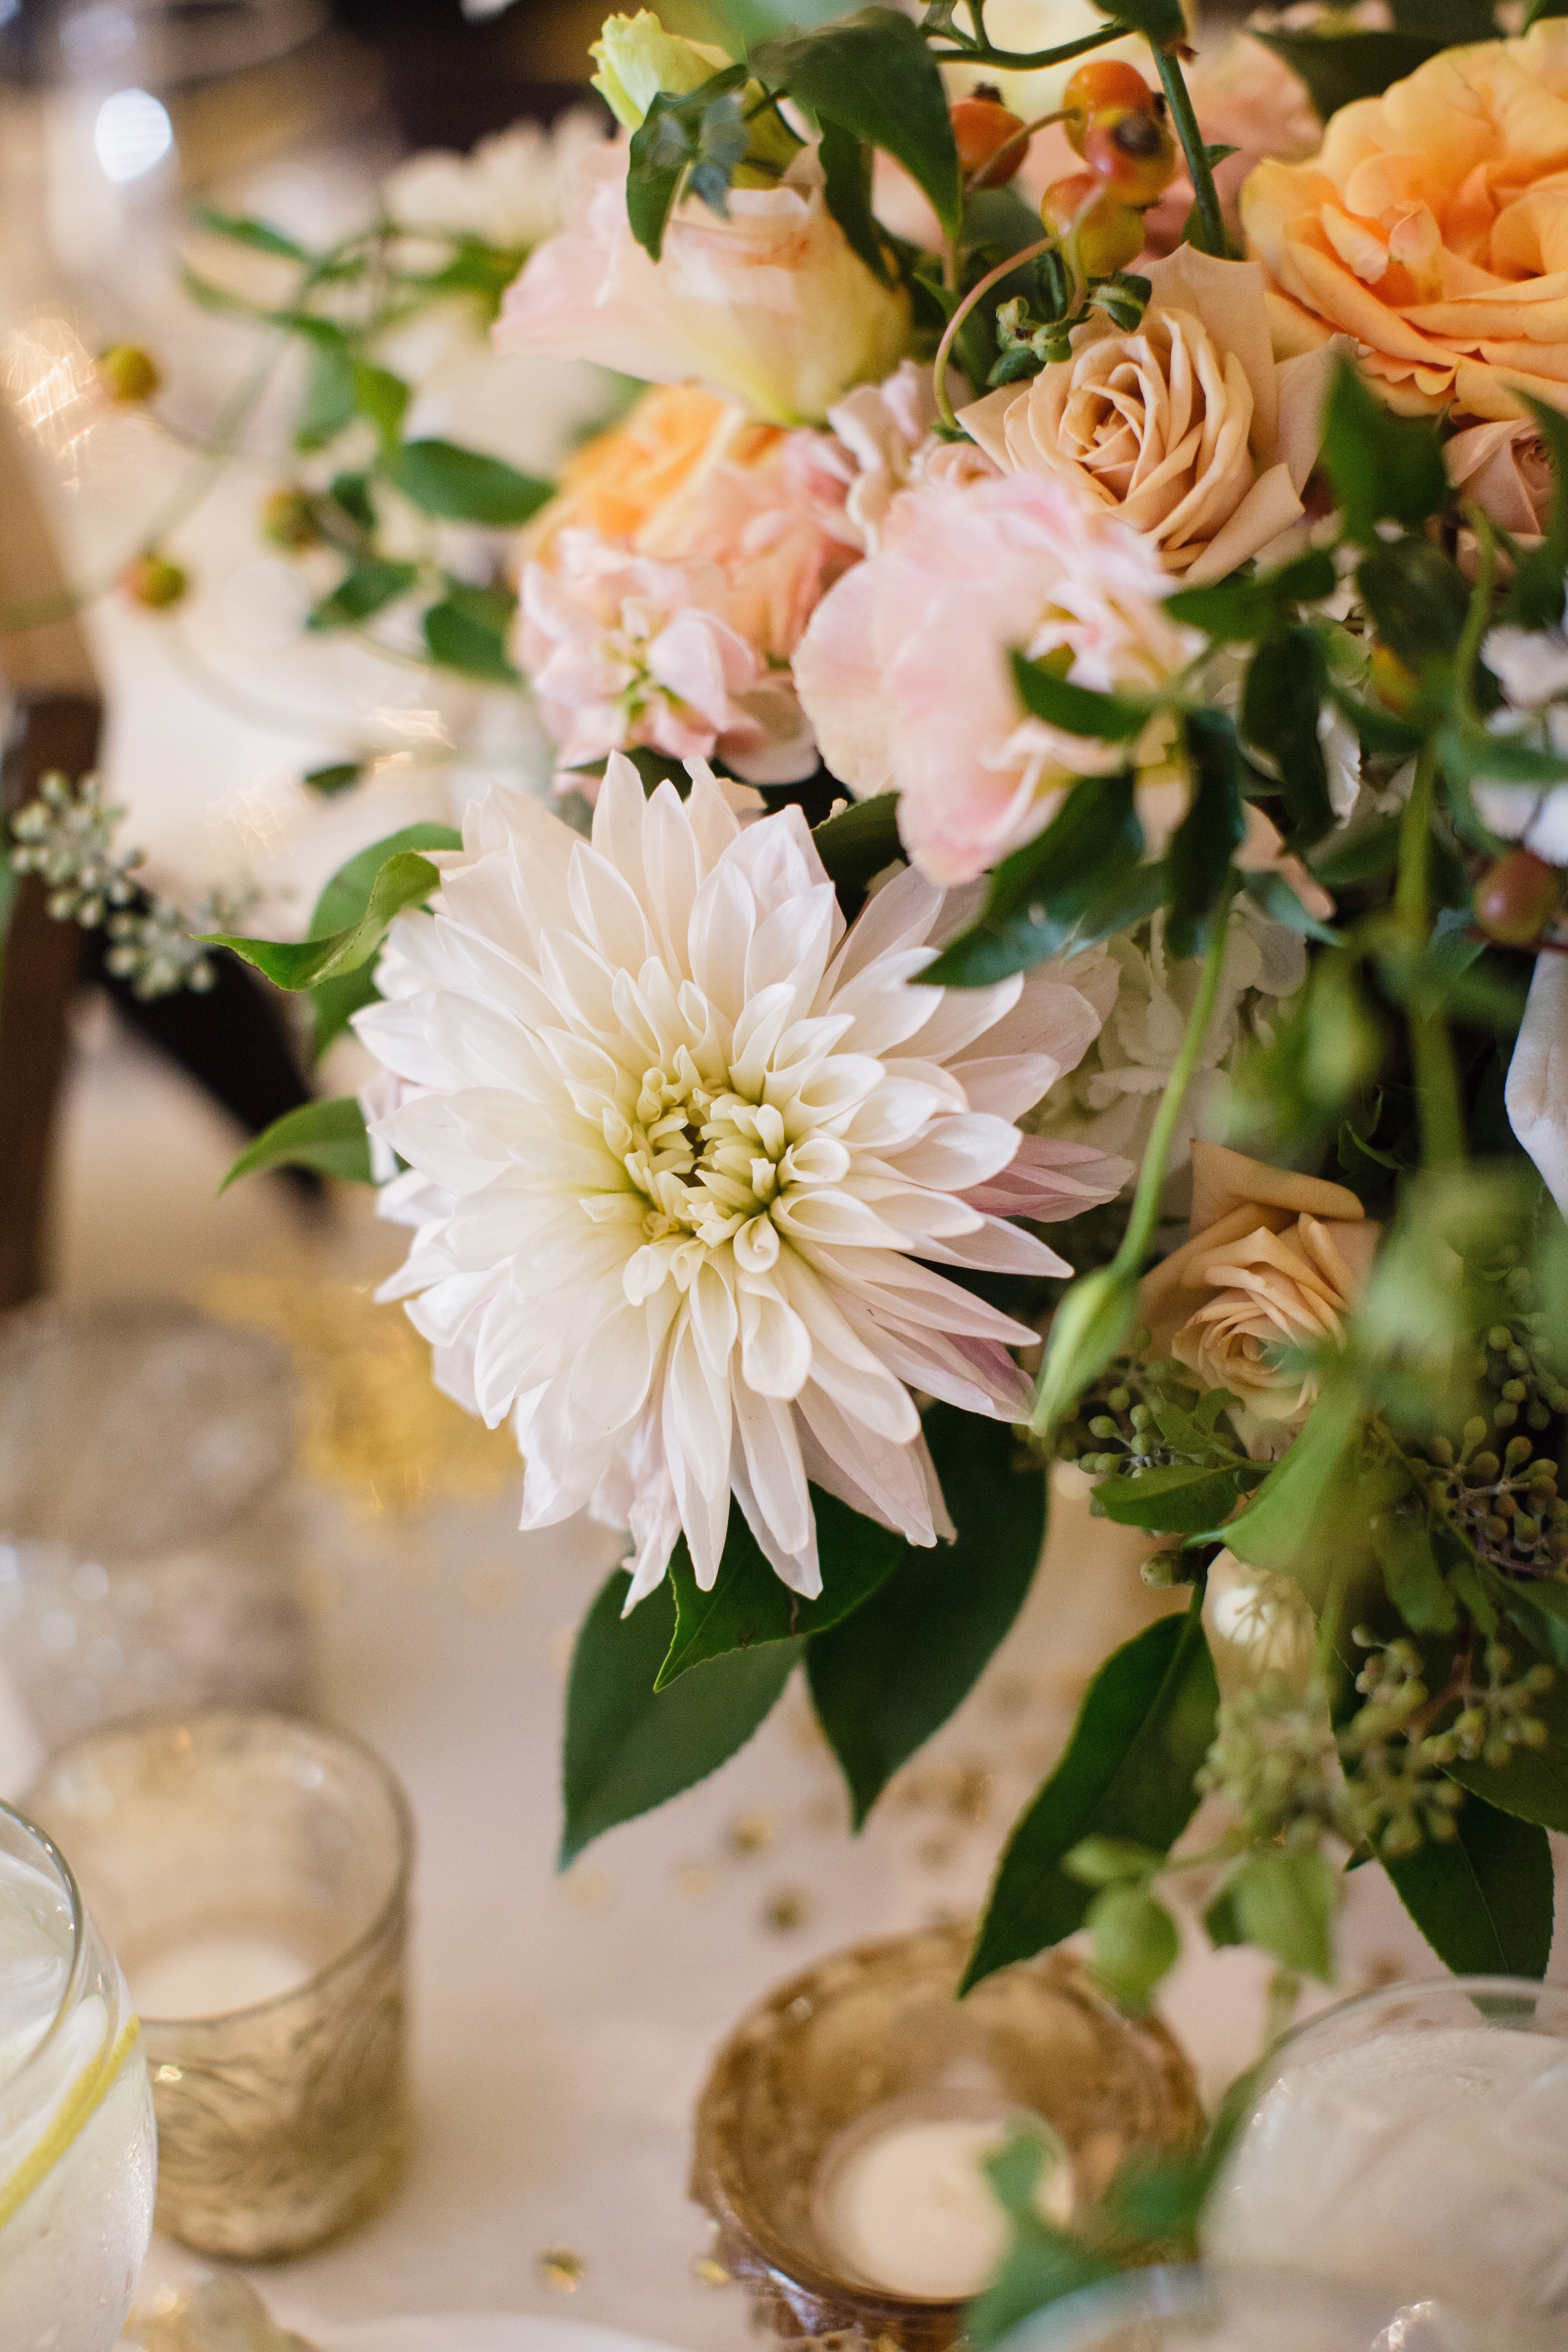 Centerpiece by Fleur Inc, photo by Sarah Postma Photography